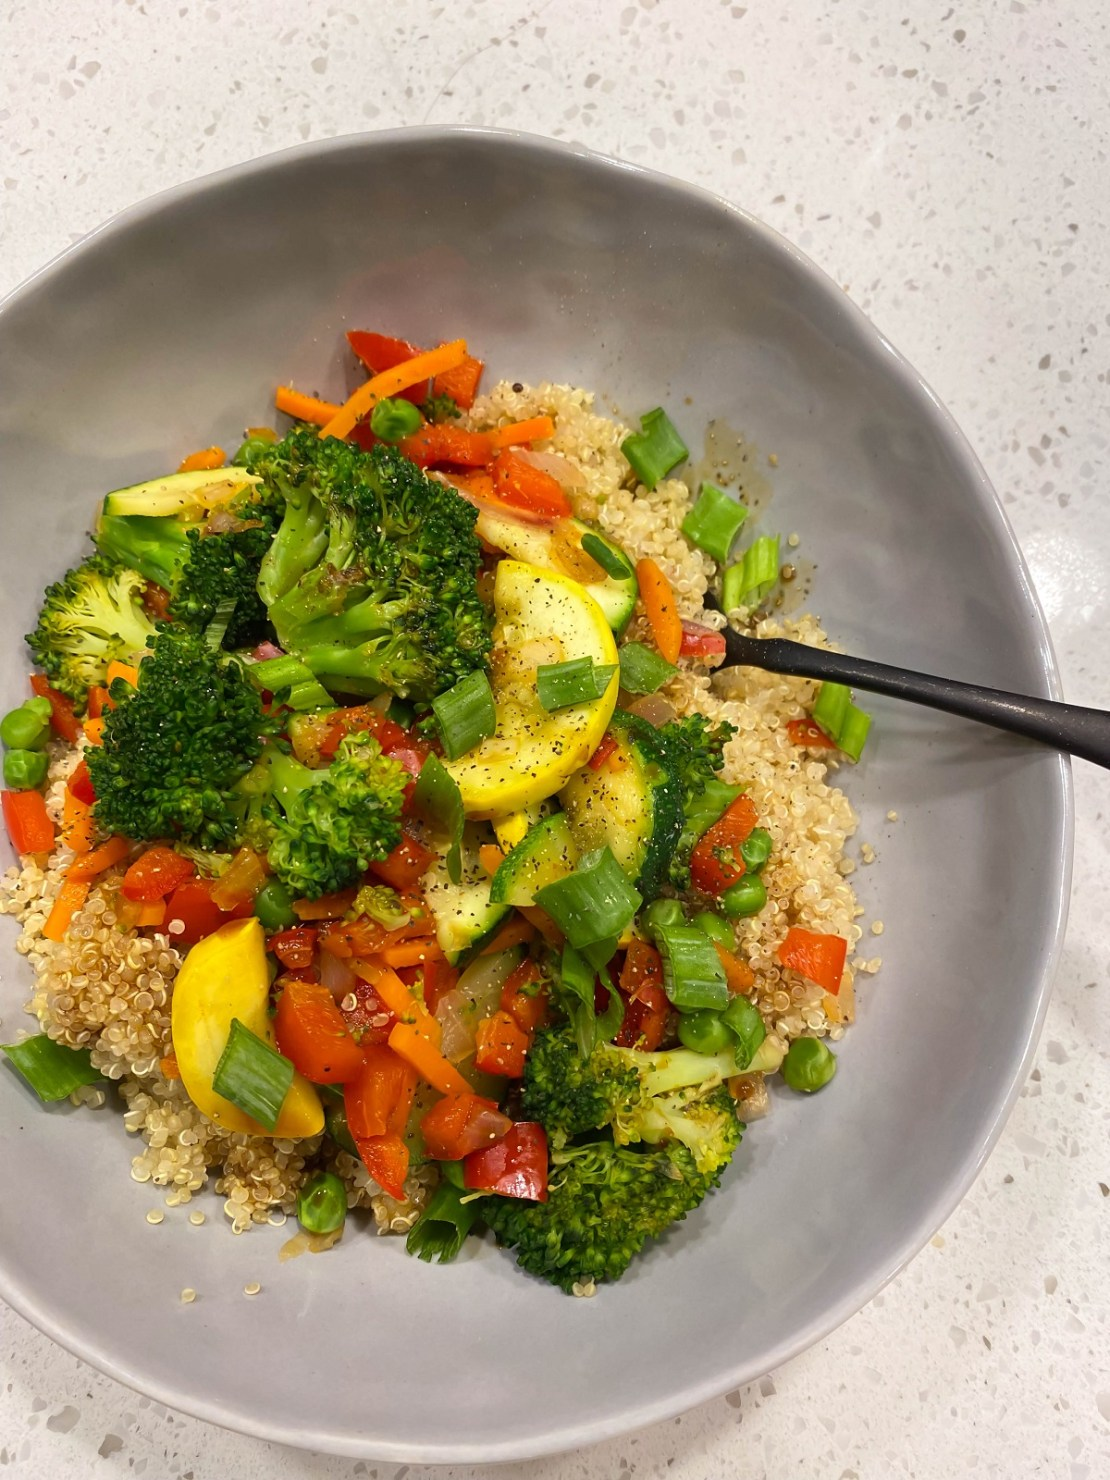 broccoli zucchini red bell pepper on top of cooked quinoa in gray bowl